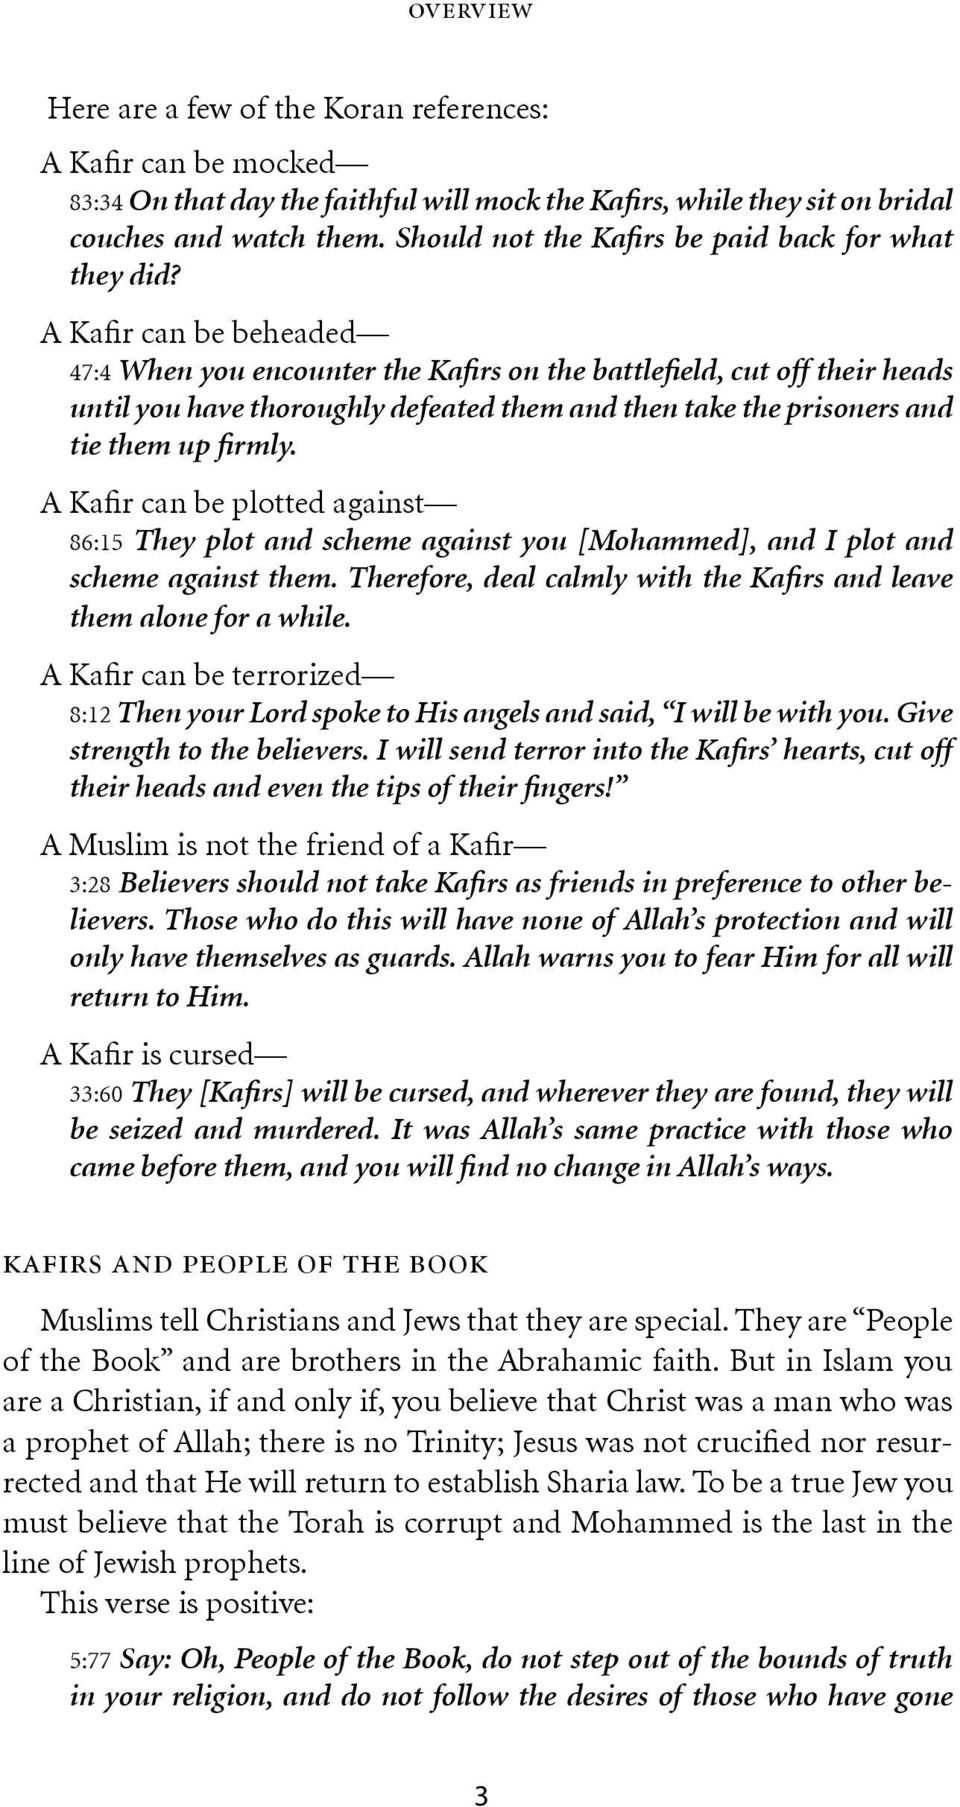 A Kafir can be beheaded 47:4 When you encounter the Kafirs on the battlefield, cut off their heads until you have thoroughly defeated them and then take the prisoners and tie them up firmly.